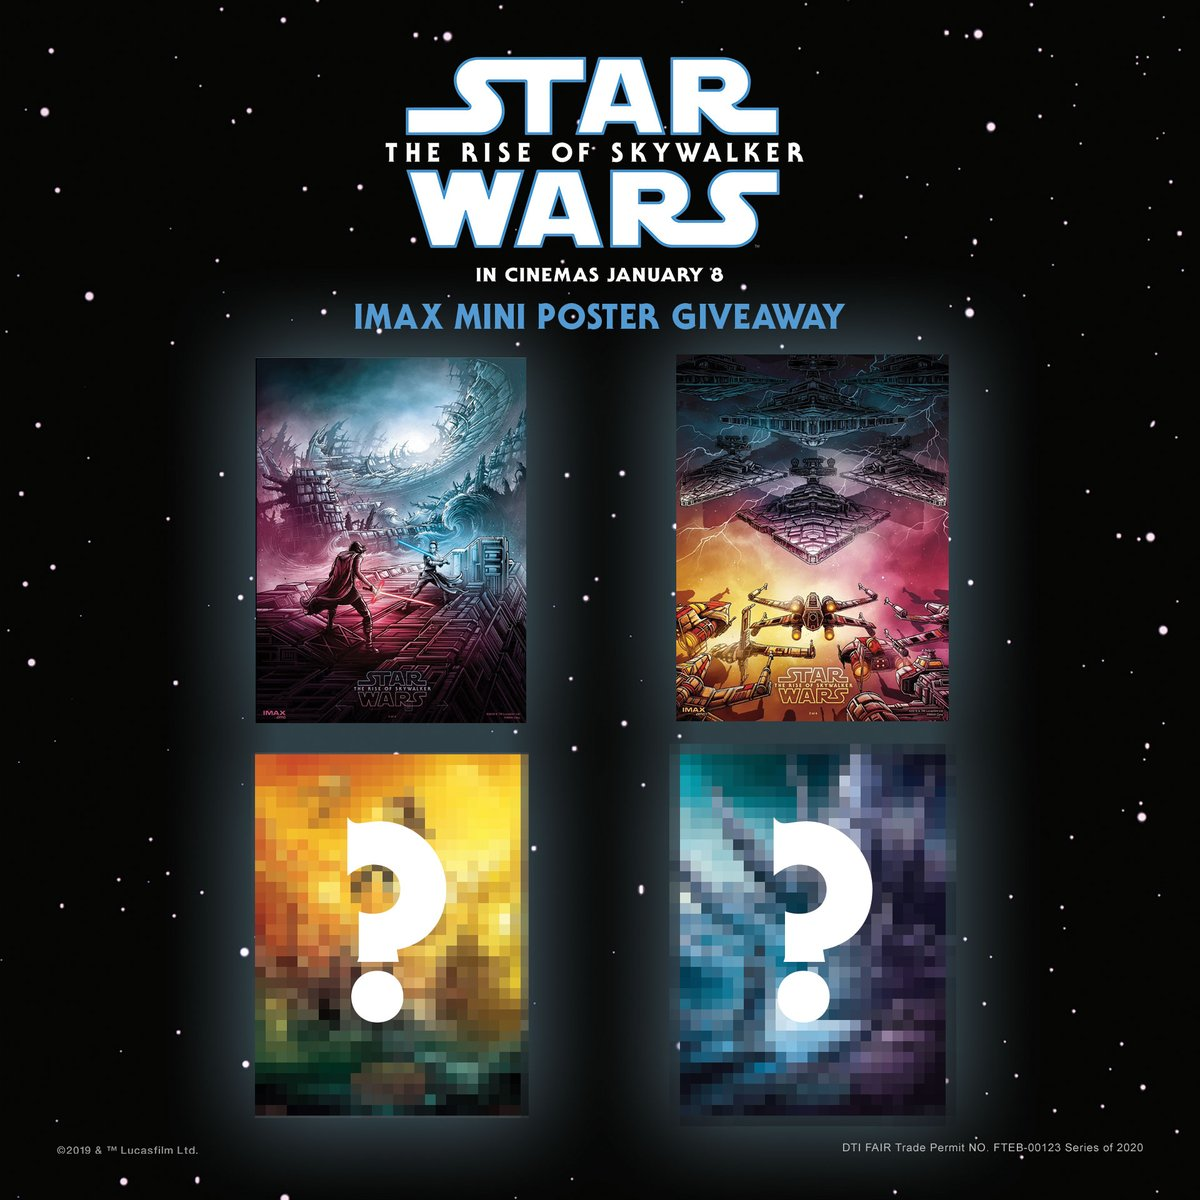 We're now on our second week! Collect 4 exclusive mini posters when you see #StarWars: #TheRiseOfSkywalker in #IMAX at SM Cinema!  The promo duration is for four (4) weeks and a new poster design will be available each week. https://t.co/lorEm9YVUD